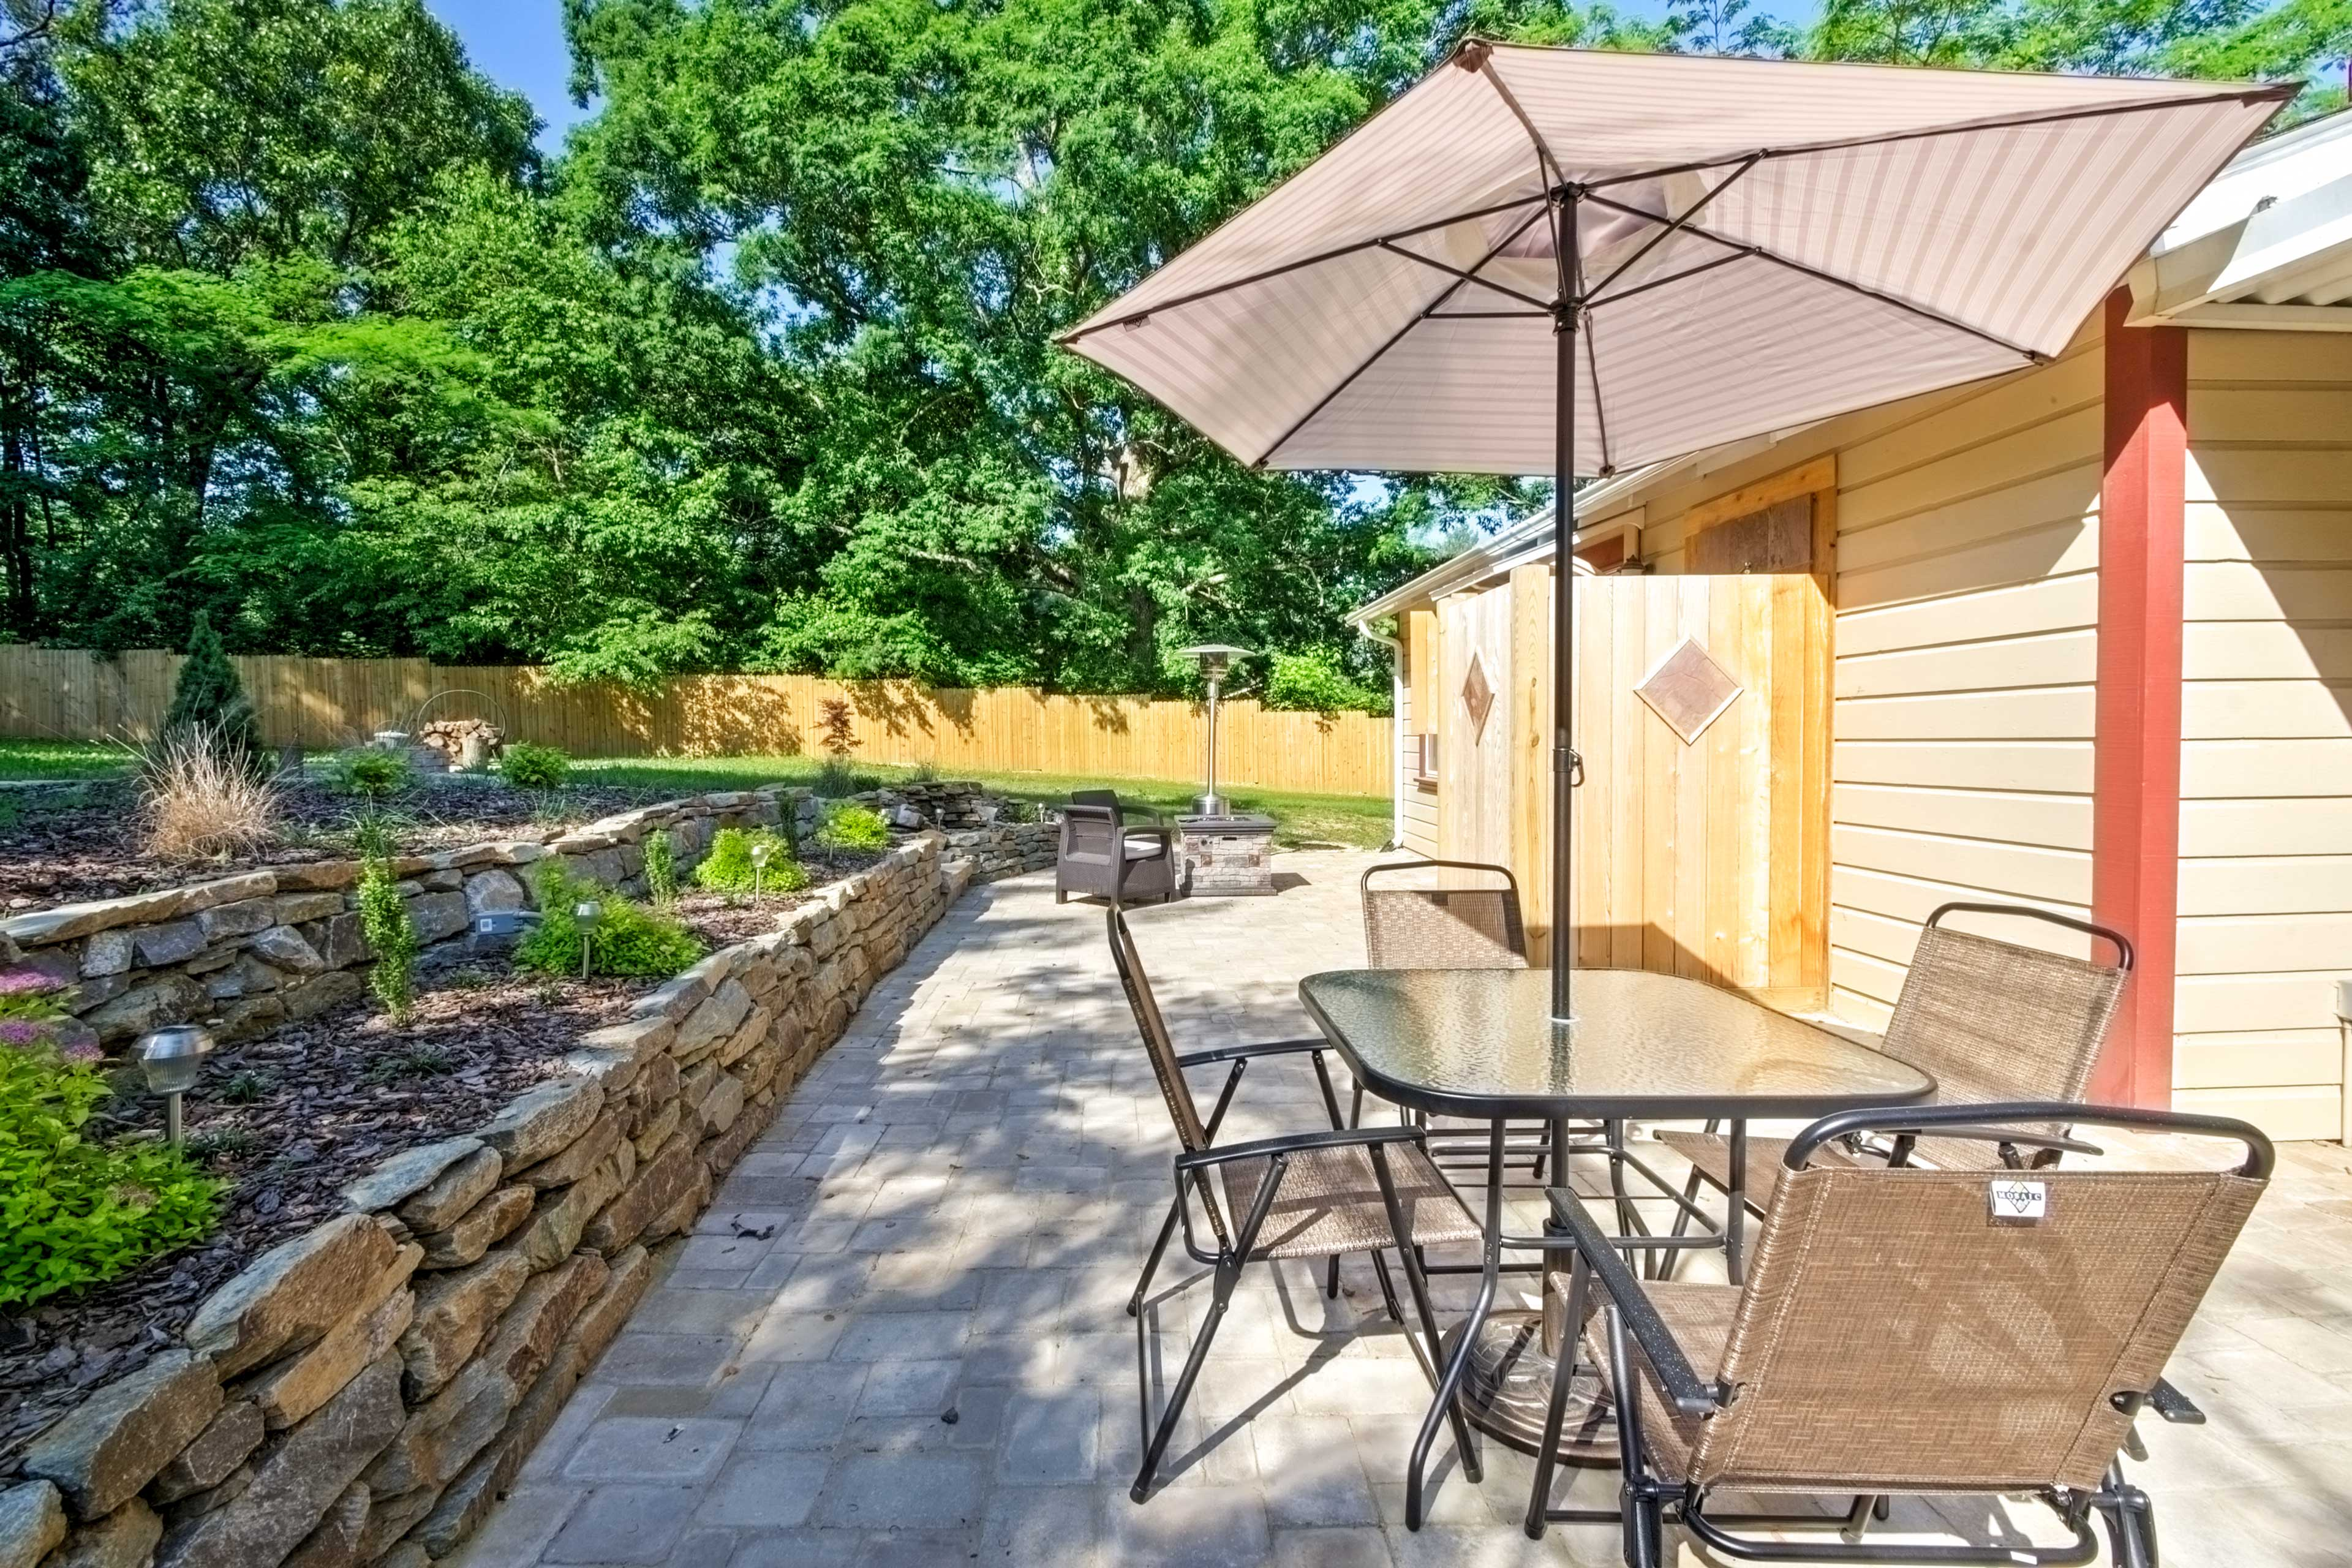 Opt to feast on your home-cooked meals inside or outside at the outdoor table.